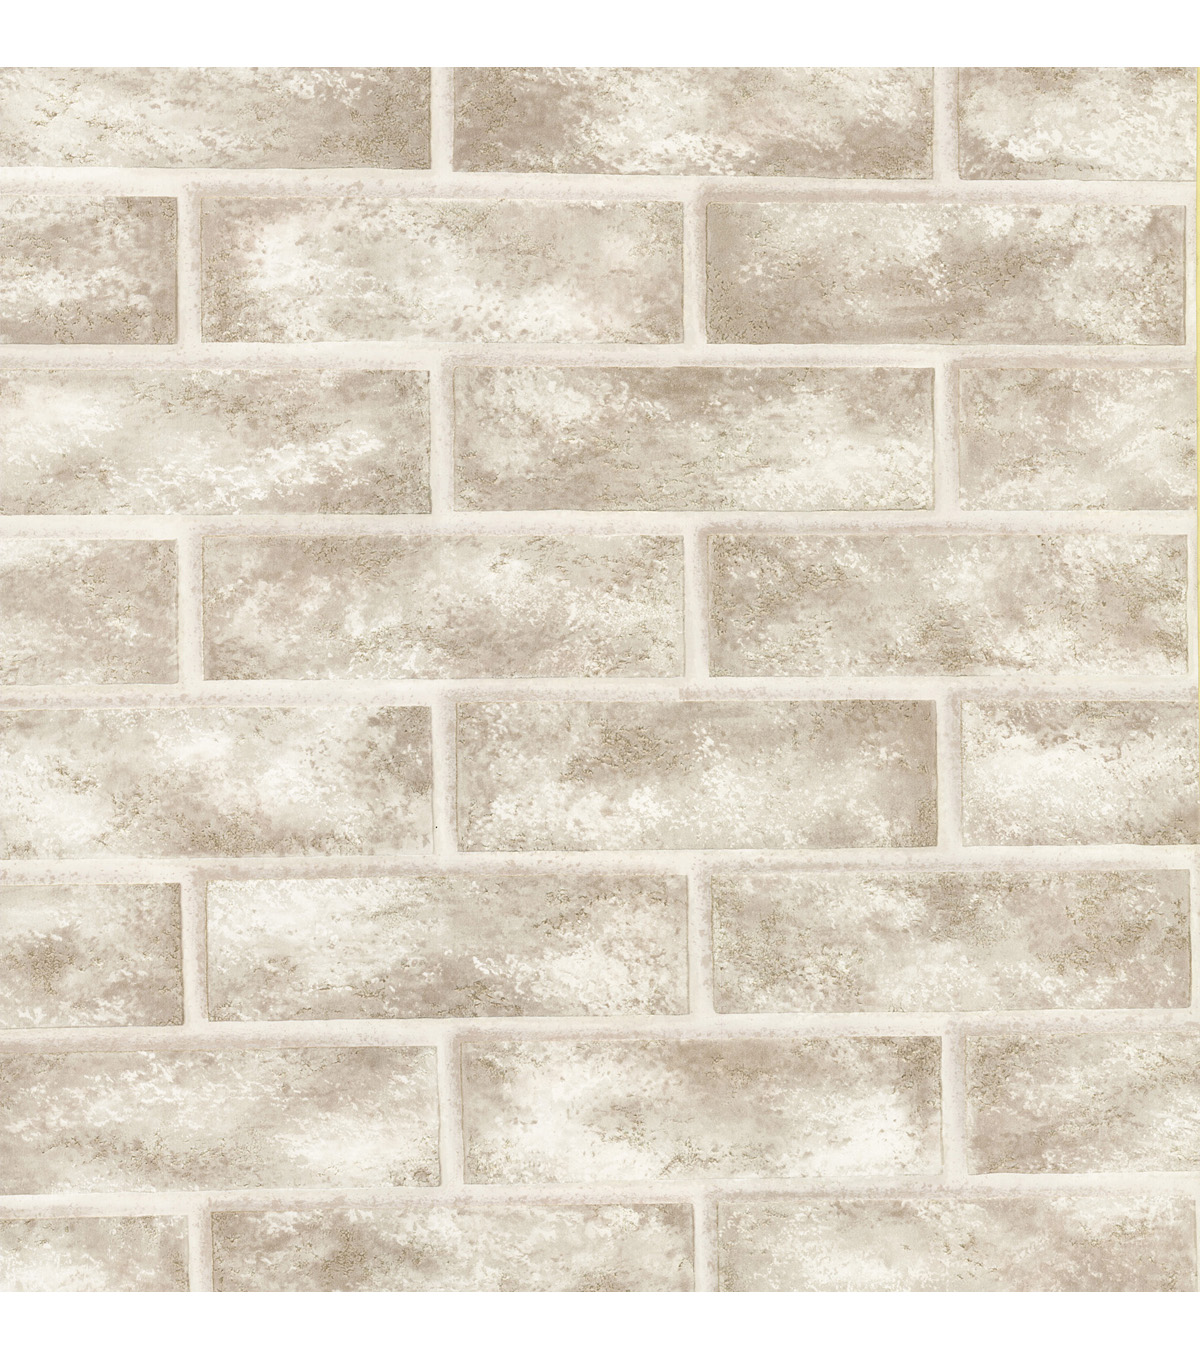 Urbania White Brick Texture Wallpaper